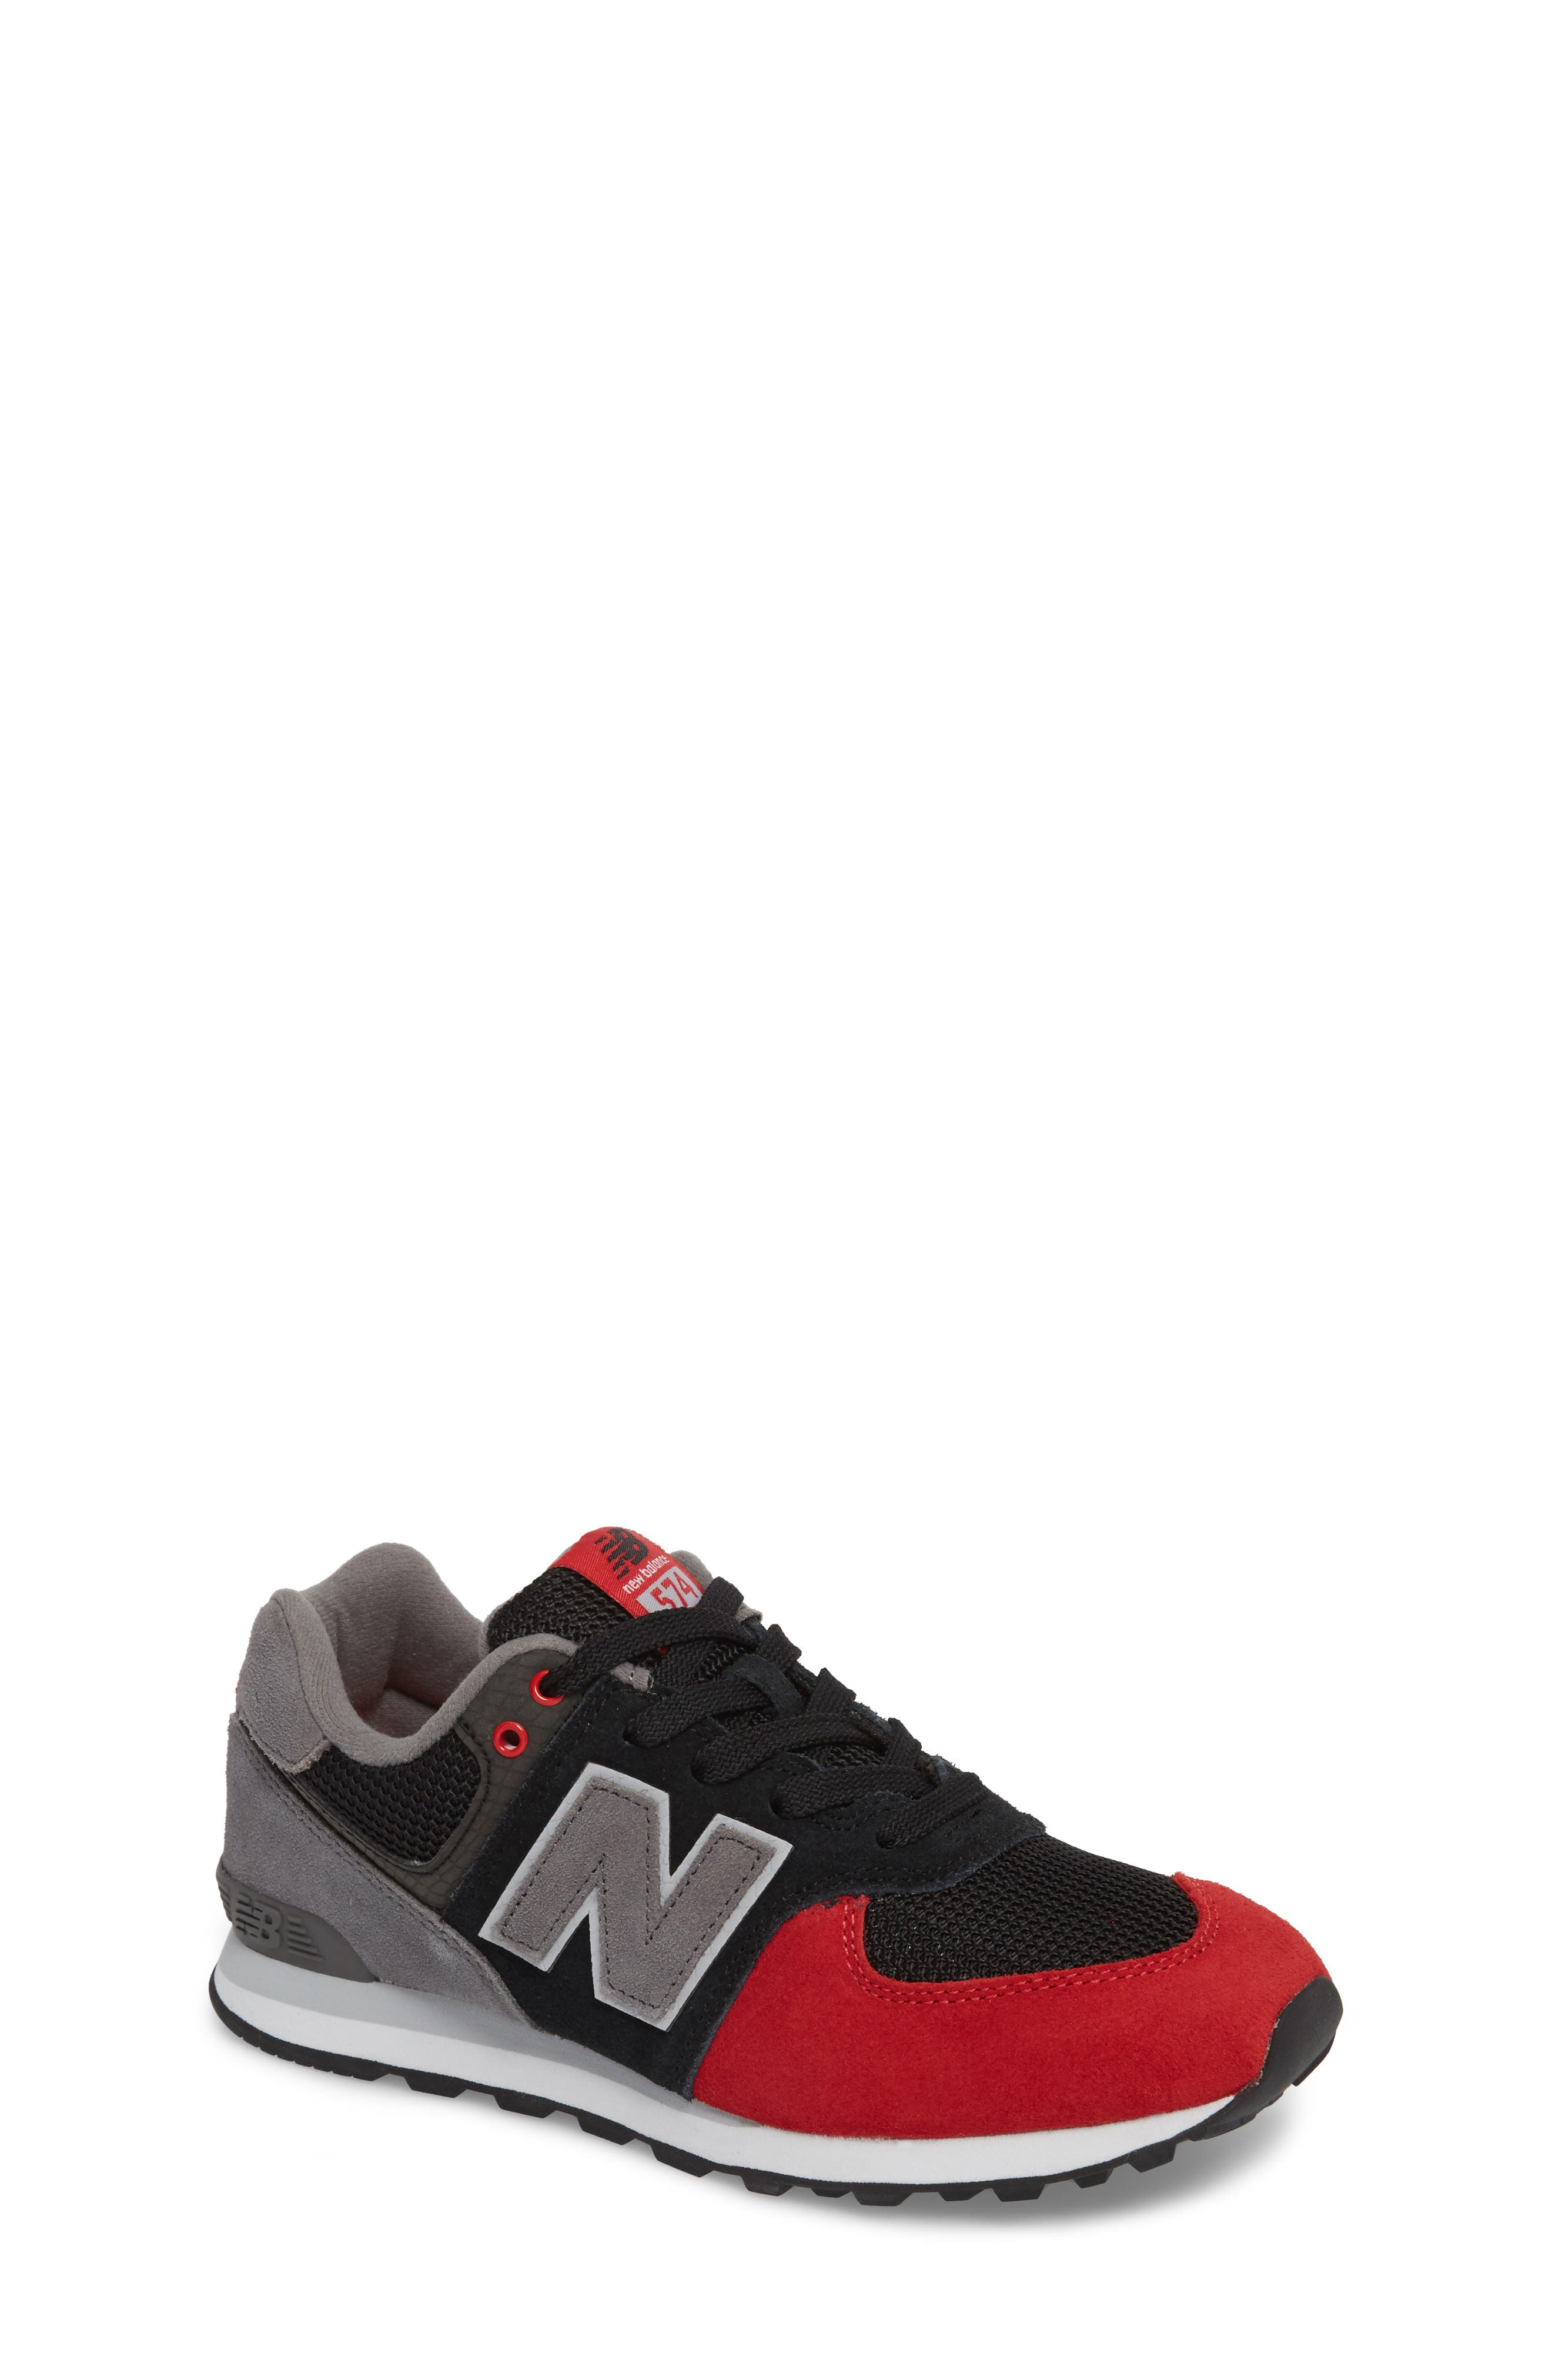 574 Serpent Luxe Sneaker,                             Main thumbnail 1, color,